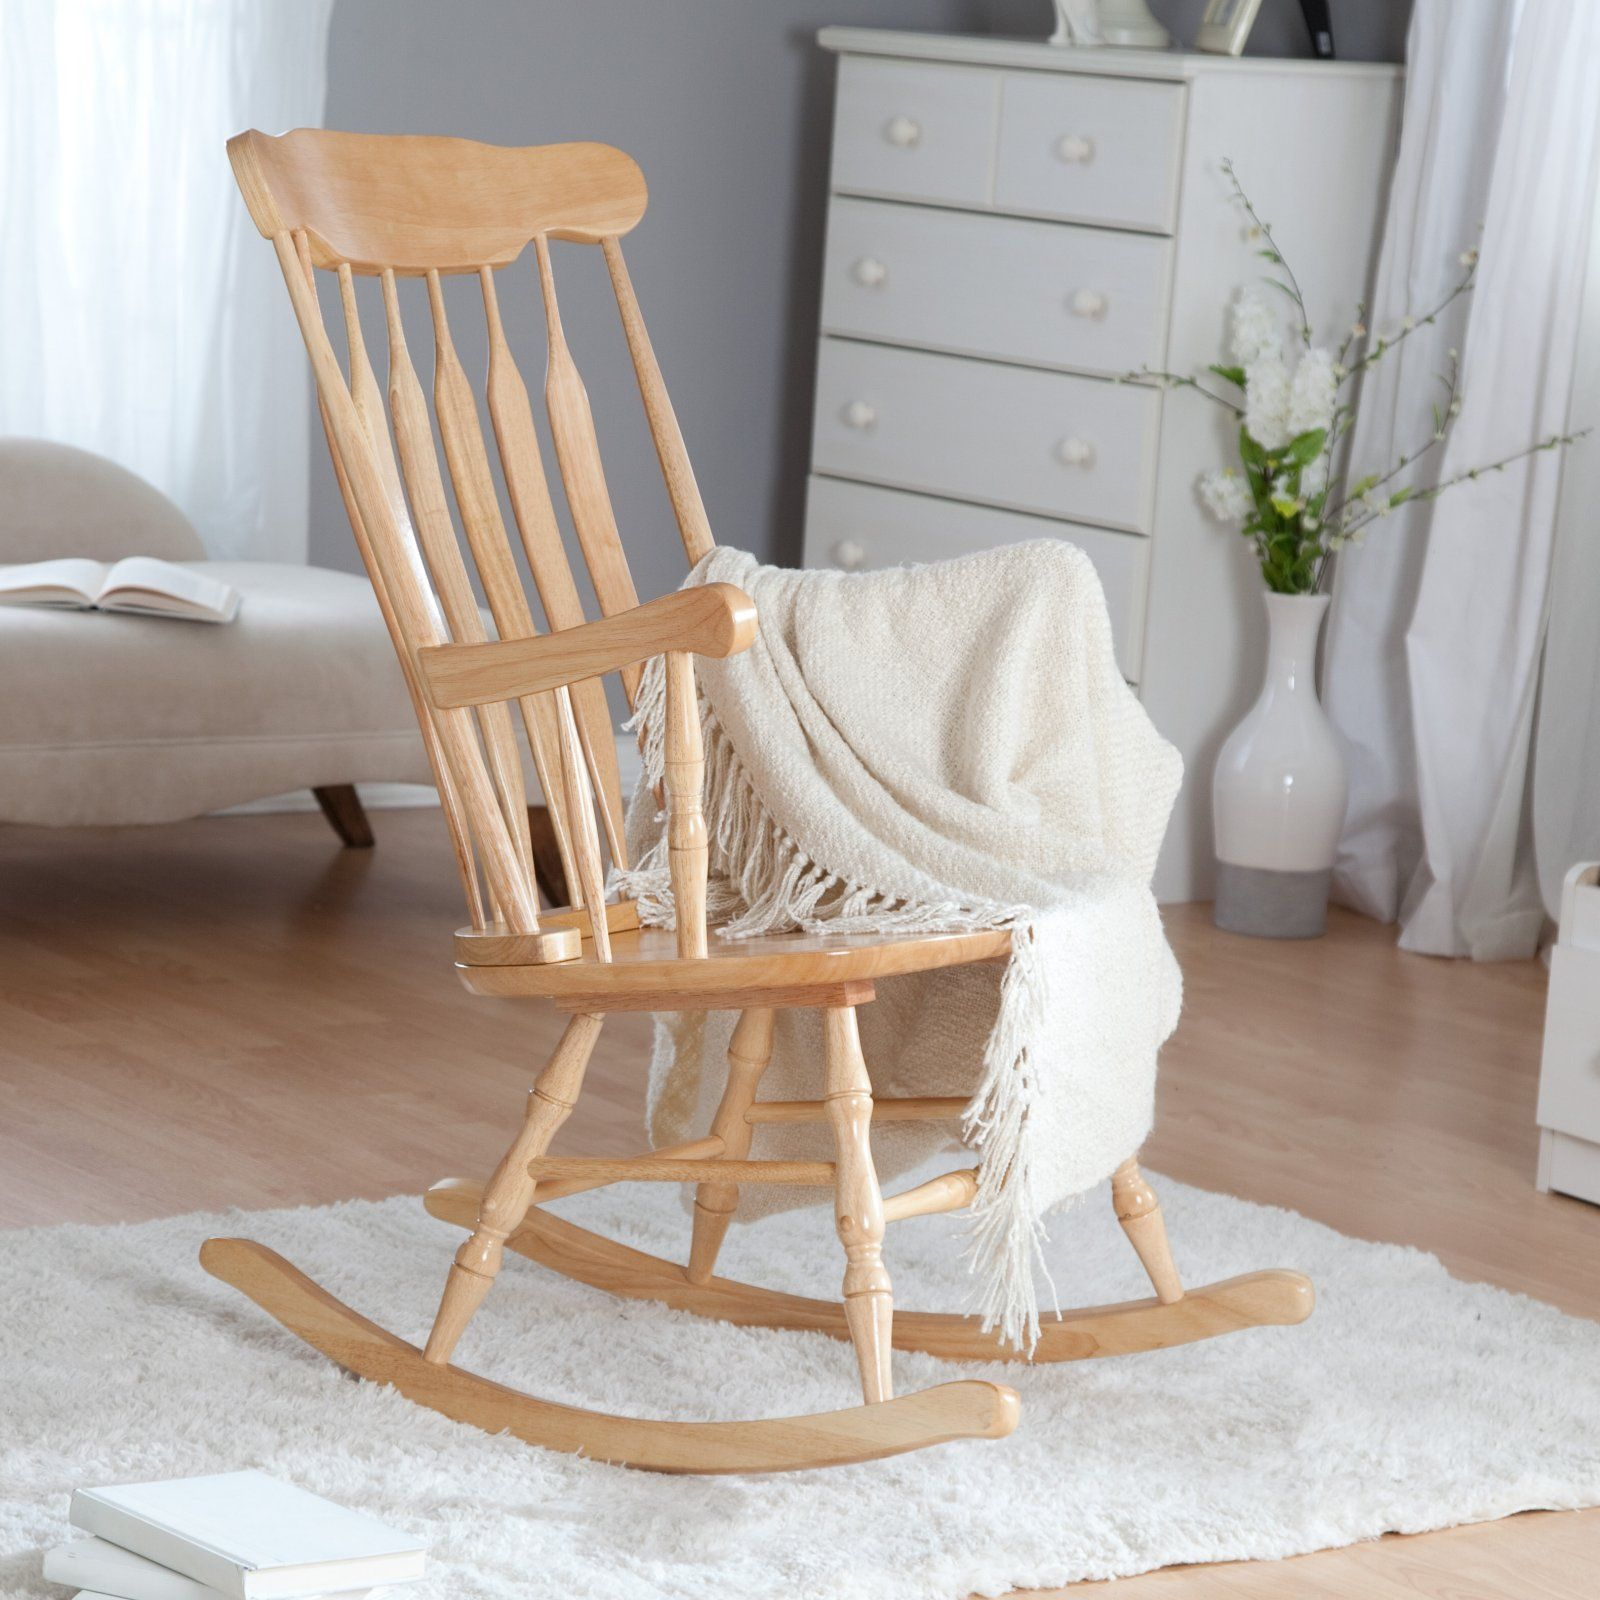 Kidkraft Nursery Rocker Natural Rocking Chairs At Hayneedle Rocking Chair Nursery Nursery Chair Rocking Chair